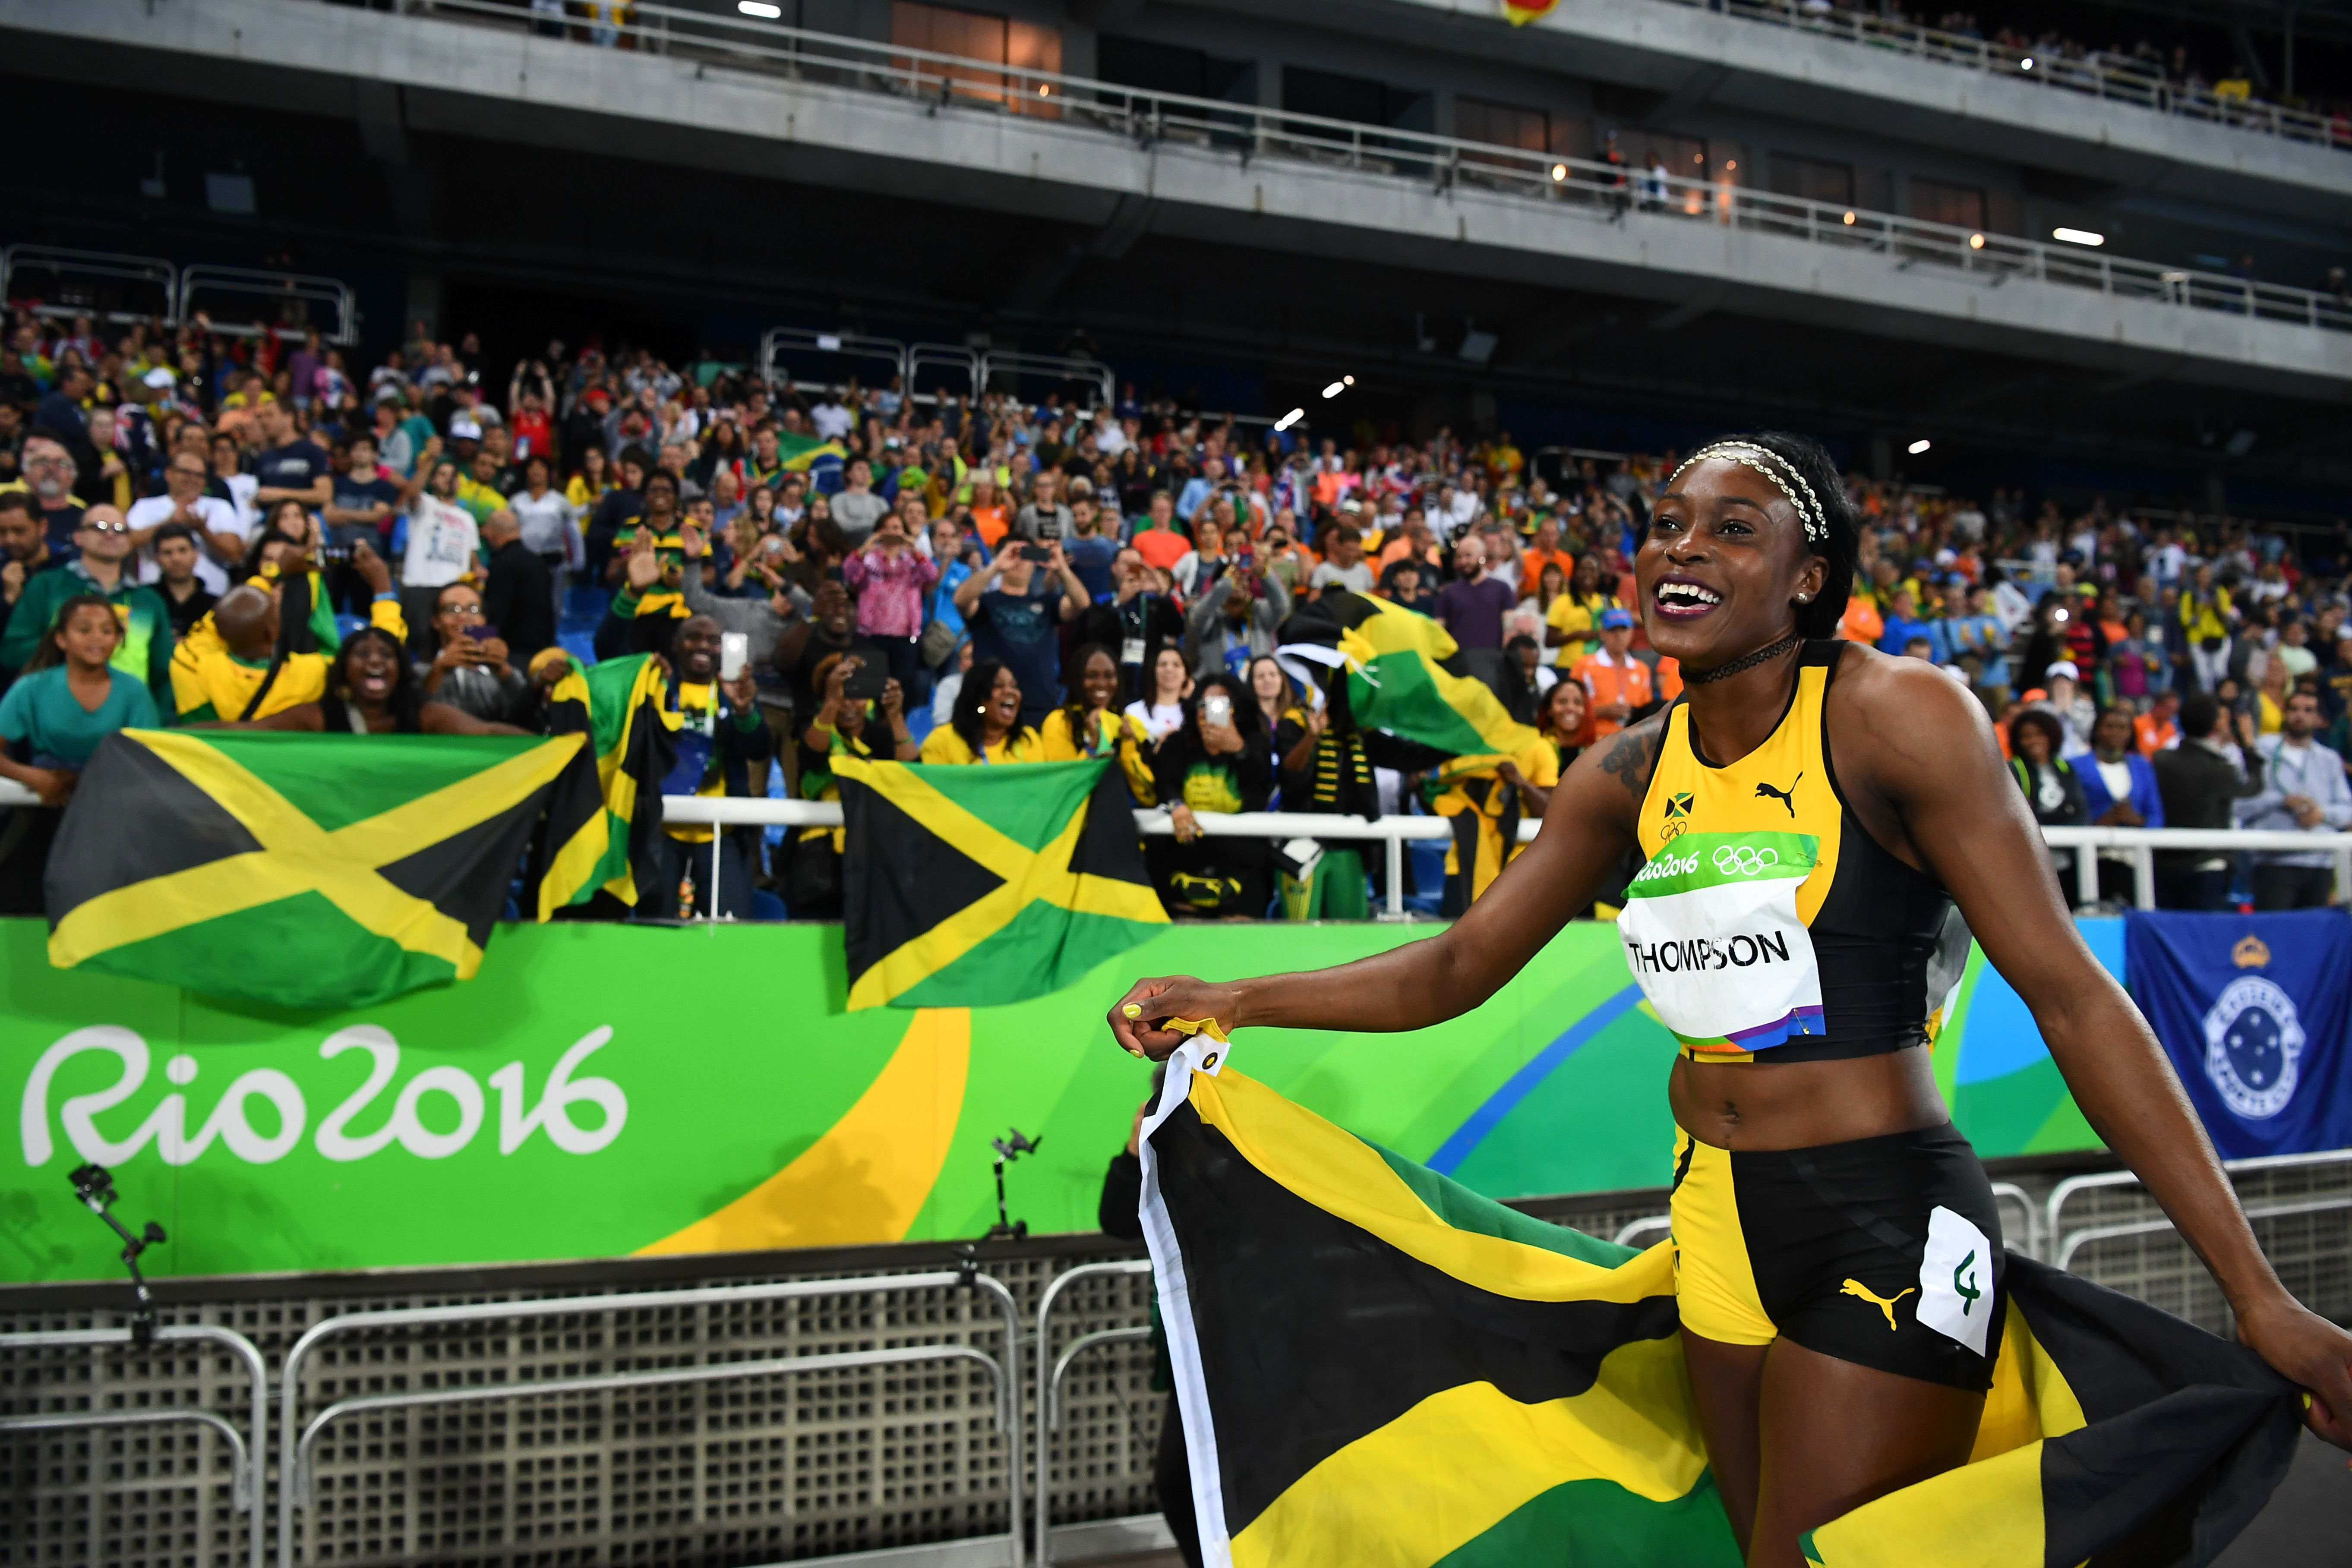 Jamaica's Elaine Thompson celebrates after she won the Women's 100m Final during the athletics event at the Rio 2016 Olympic Games at the Olympic Stadium in Rio de Janeiro on August 13, 2016.